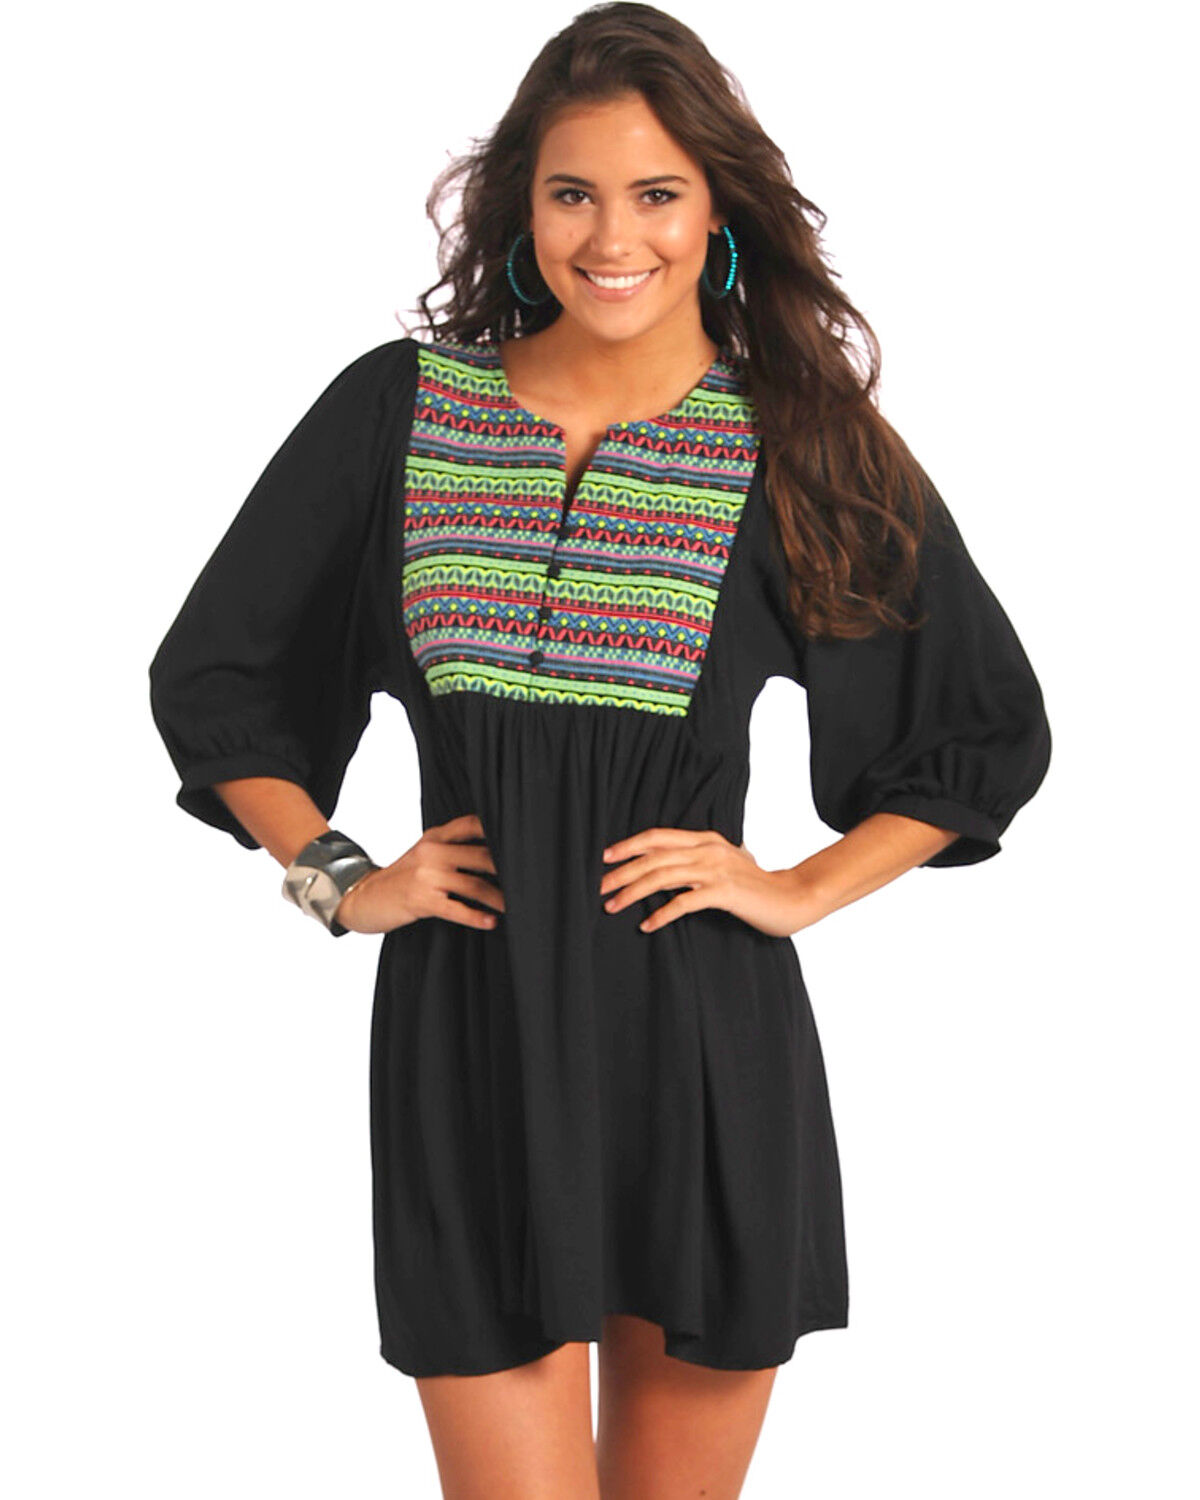 Black rock and roll cowgirl dress